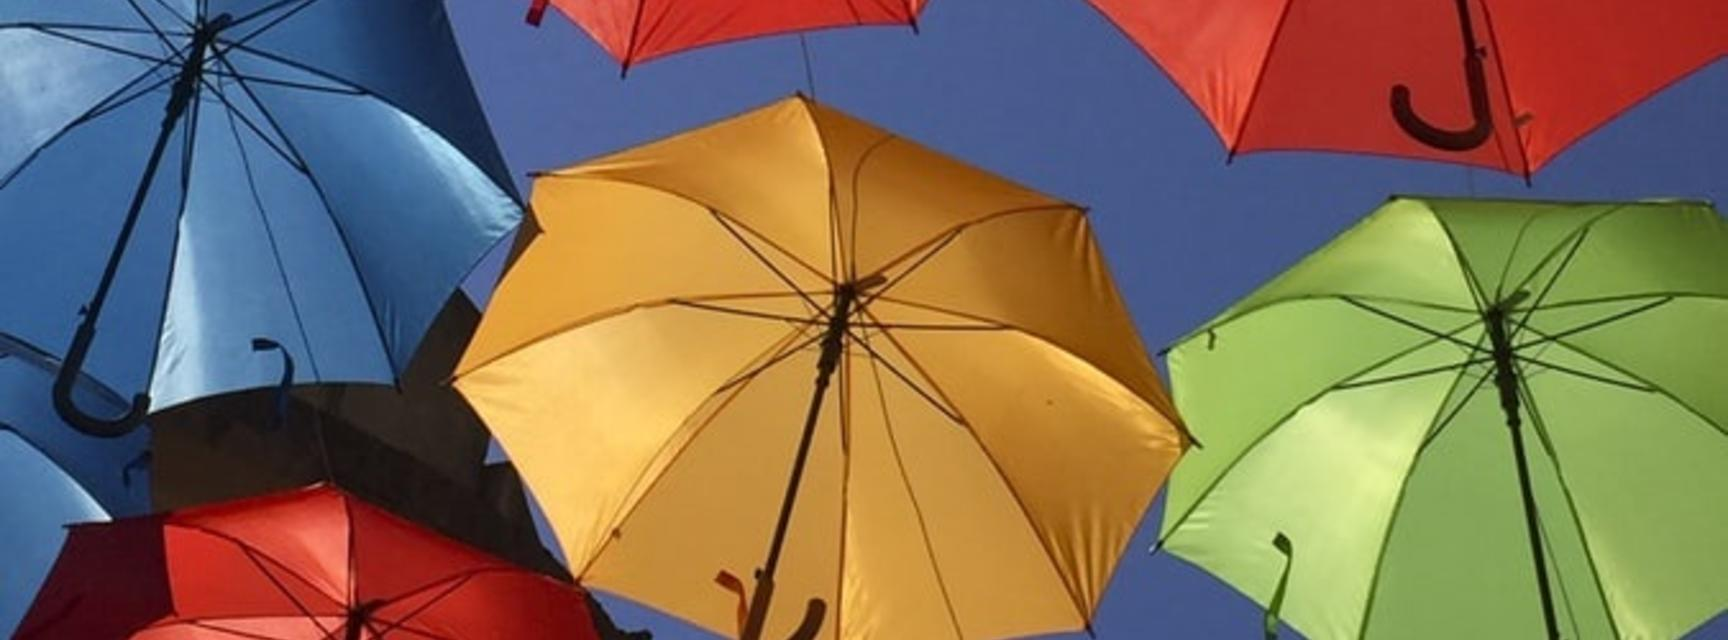 Image of yellow, orange, green, blue, pink, and purple umbrellas in the air against the blue sky background